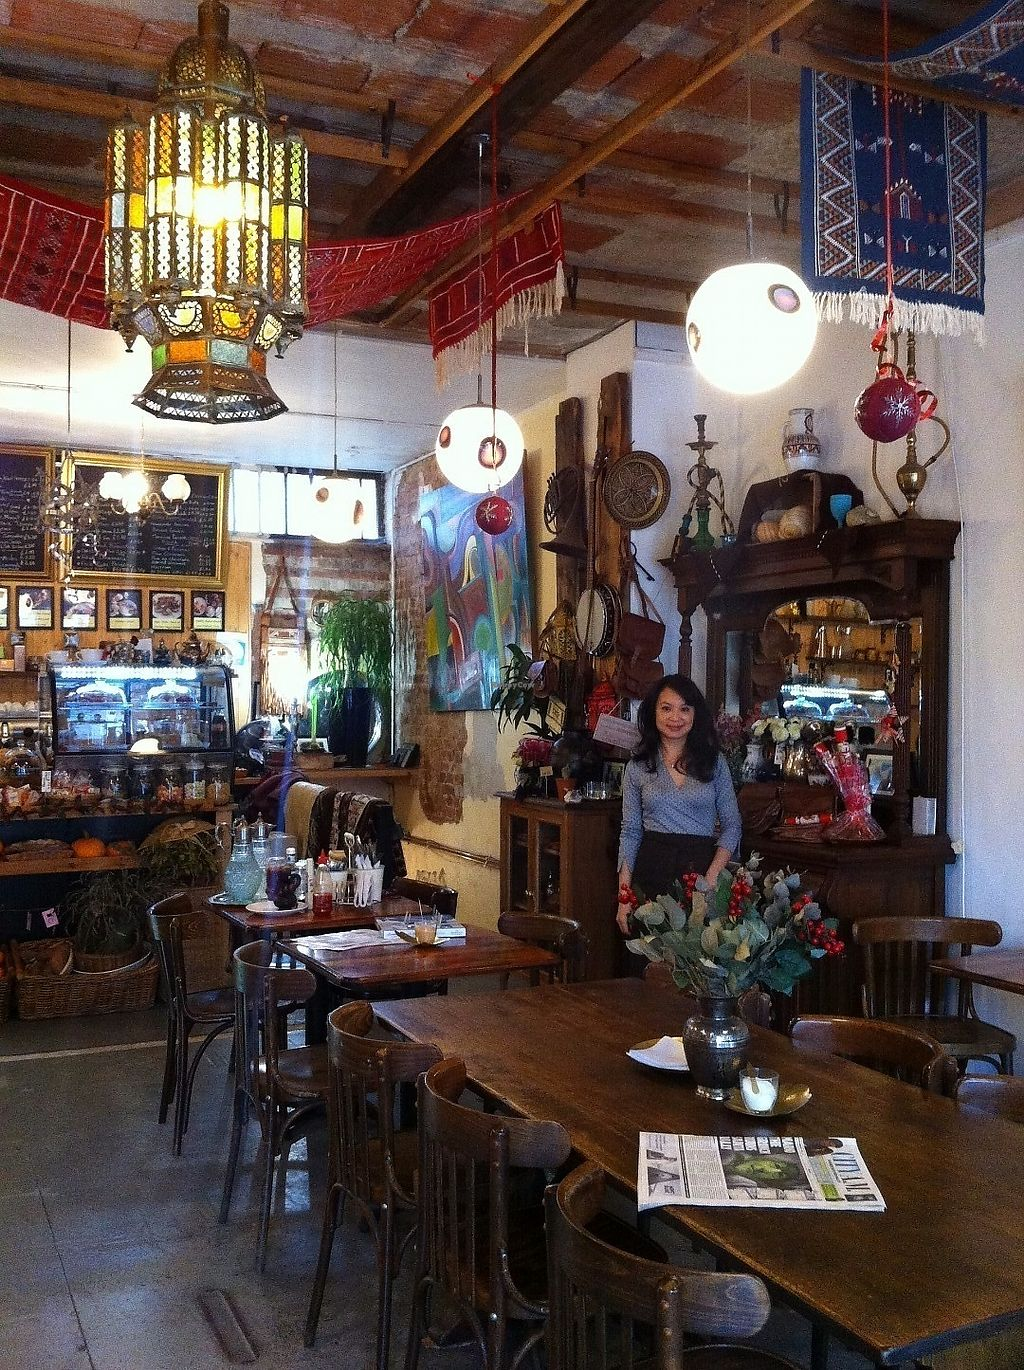 """Photo of The Coffee Lover's Cafe  by <a href=""""/members/profile/LucyNg"""">LucyNg</a> <br/>Simple home cook food. Sourceable and ethical 100% quality Arabica beans. My selection of own mixed herbal teas are one and only. Mixed to suit individuals.   <br/> June 11, 2017  - <a href='/contact/abuse/image/93648/268191'>Report</a>"""